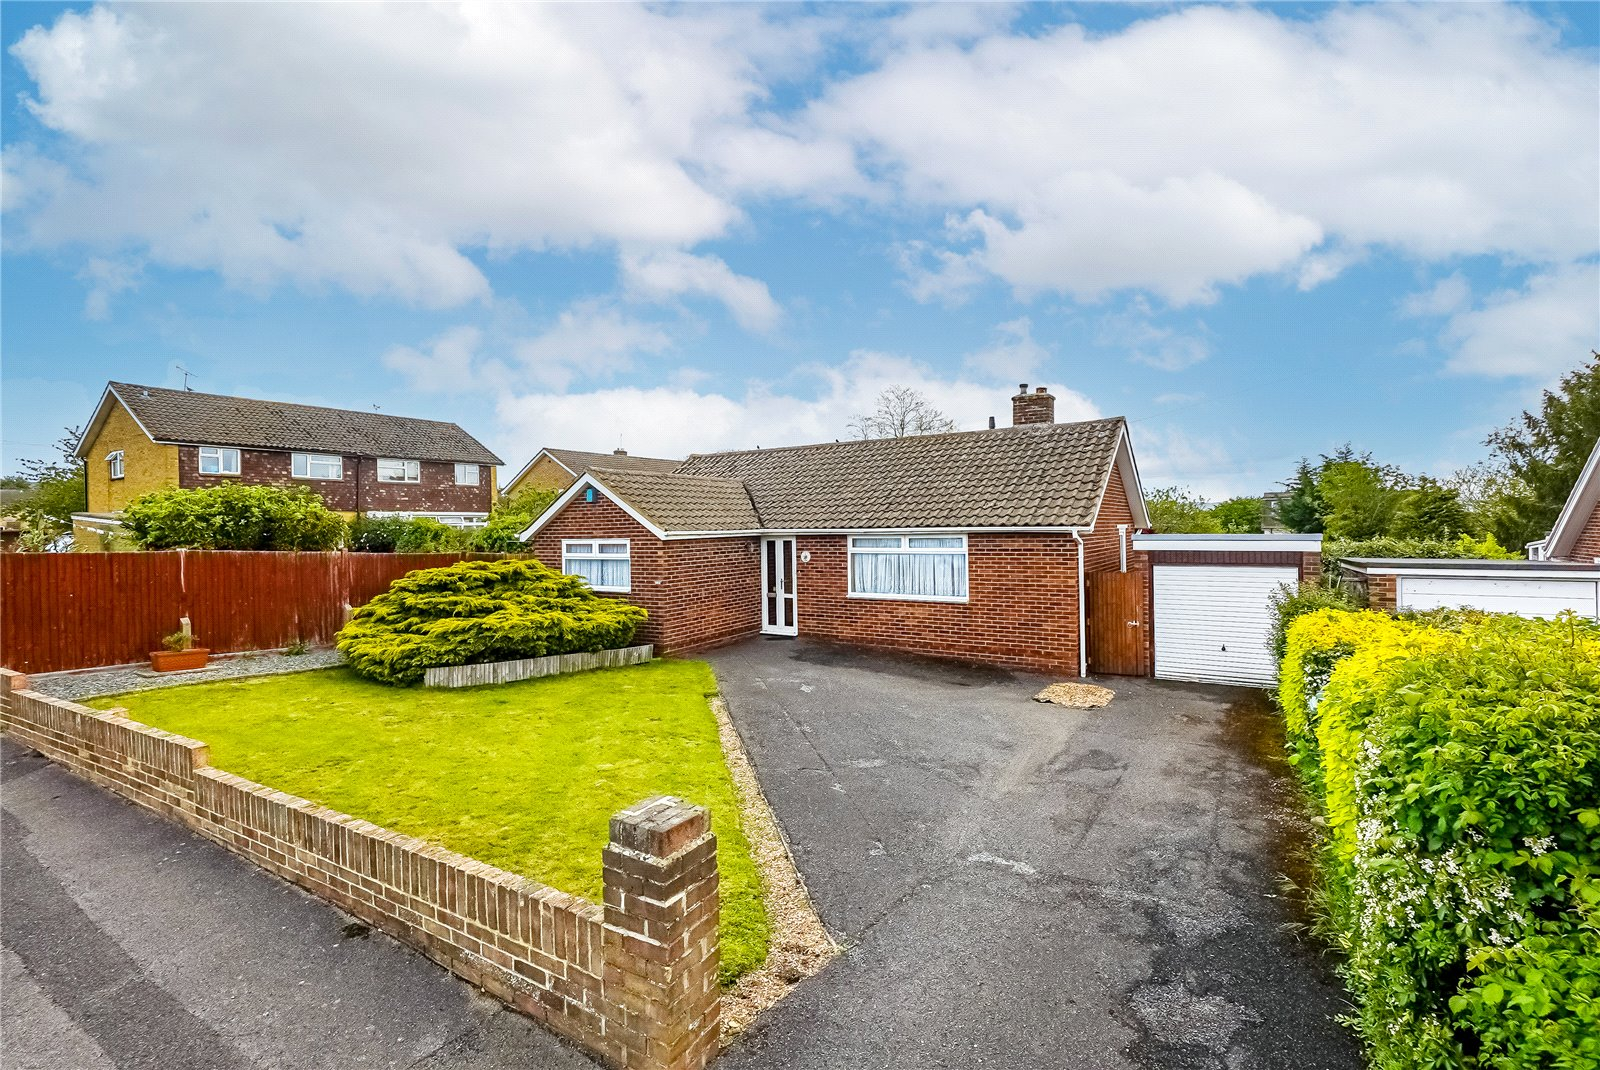 3 bed bungalow for sale in Ridgway, Maidstone - Property Image 1